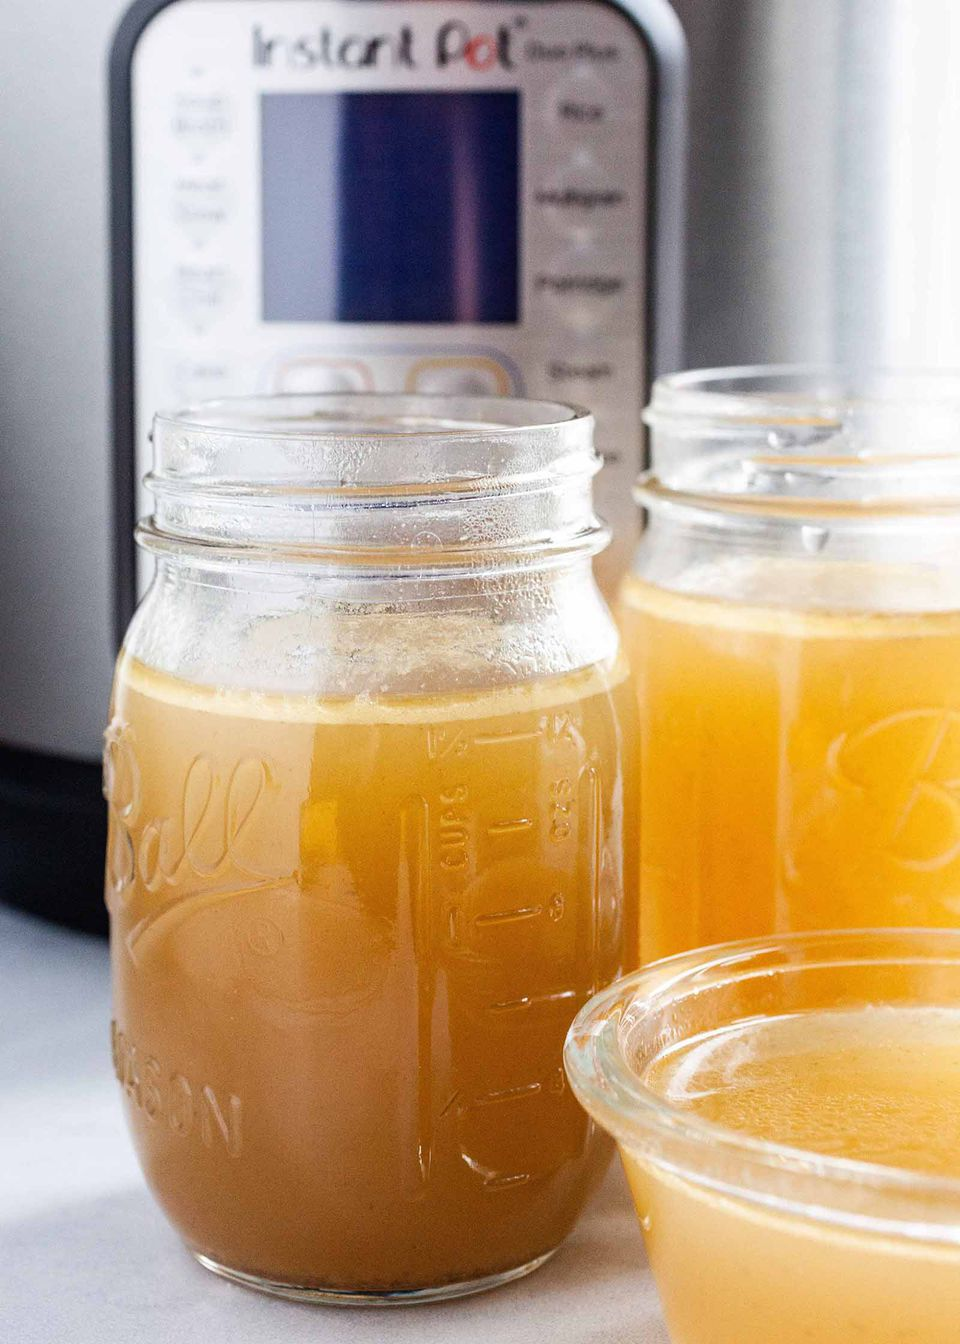 Pressure Cooker Chicken Stock - - two ball jars filled with chicken sock with an instant pot pressure cooker behind them